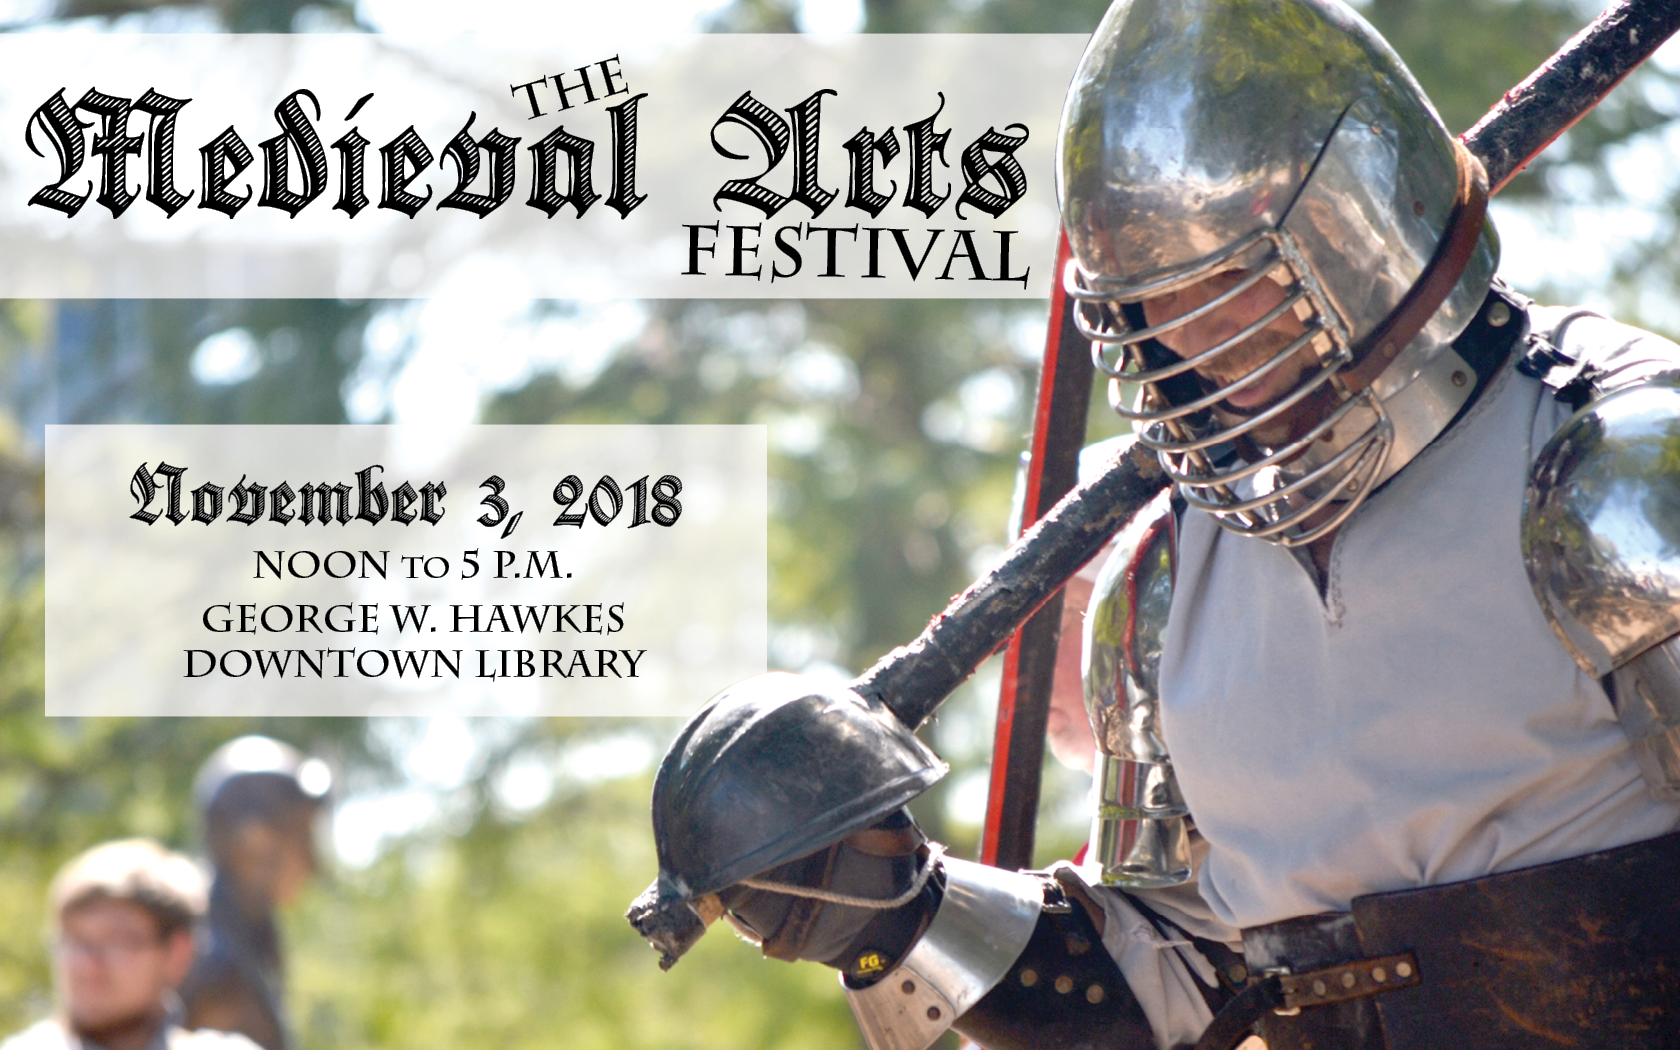 Medieval Arts Festival Returns for its 16th Year at the Arlington Public Library